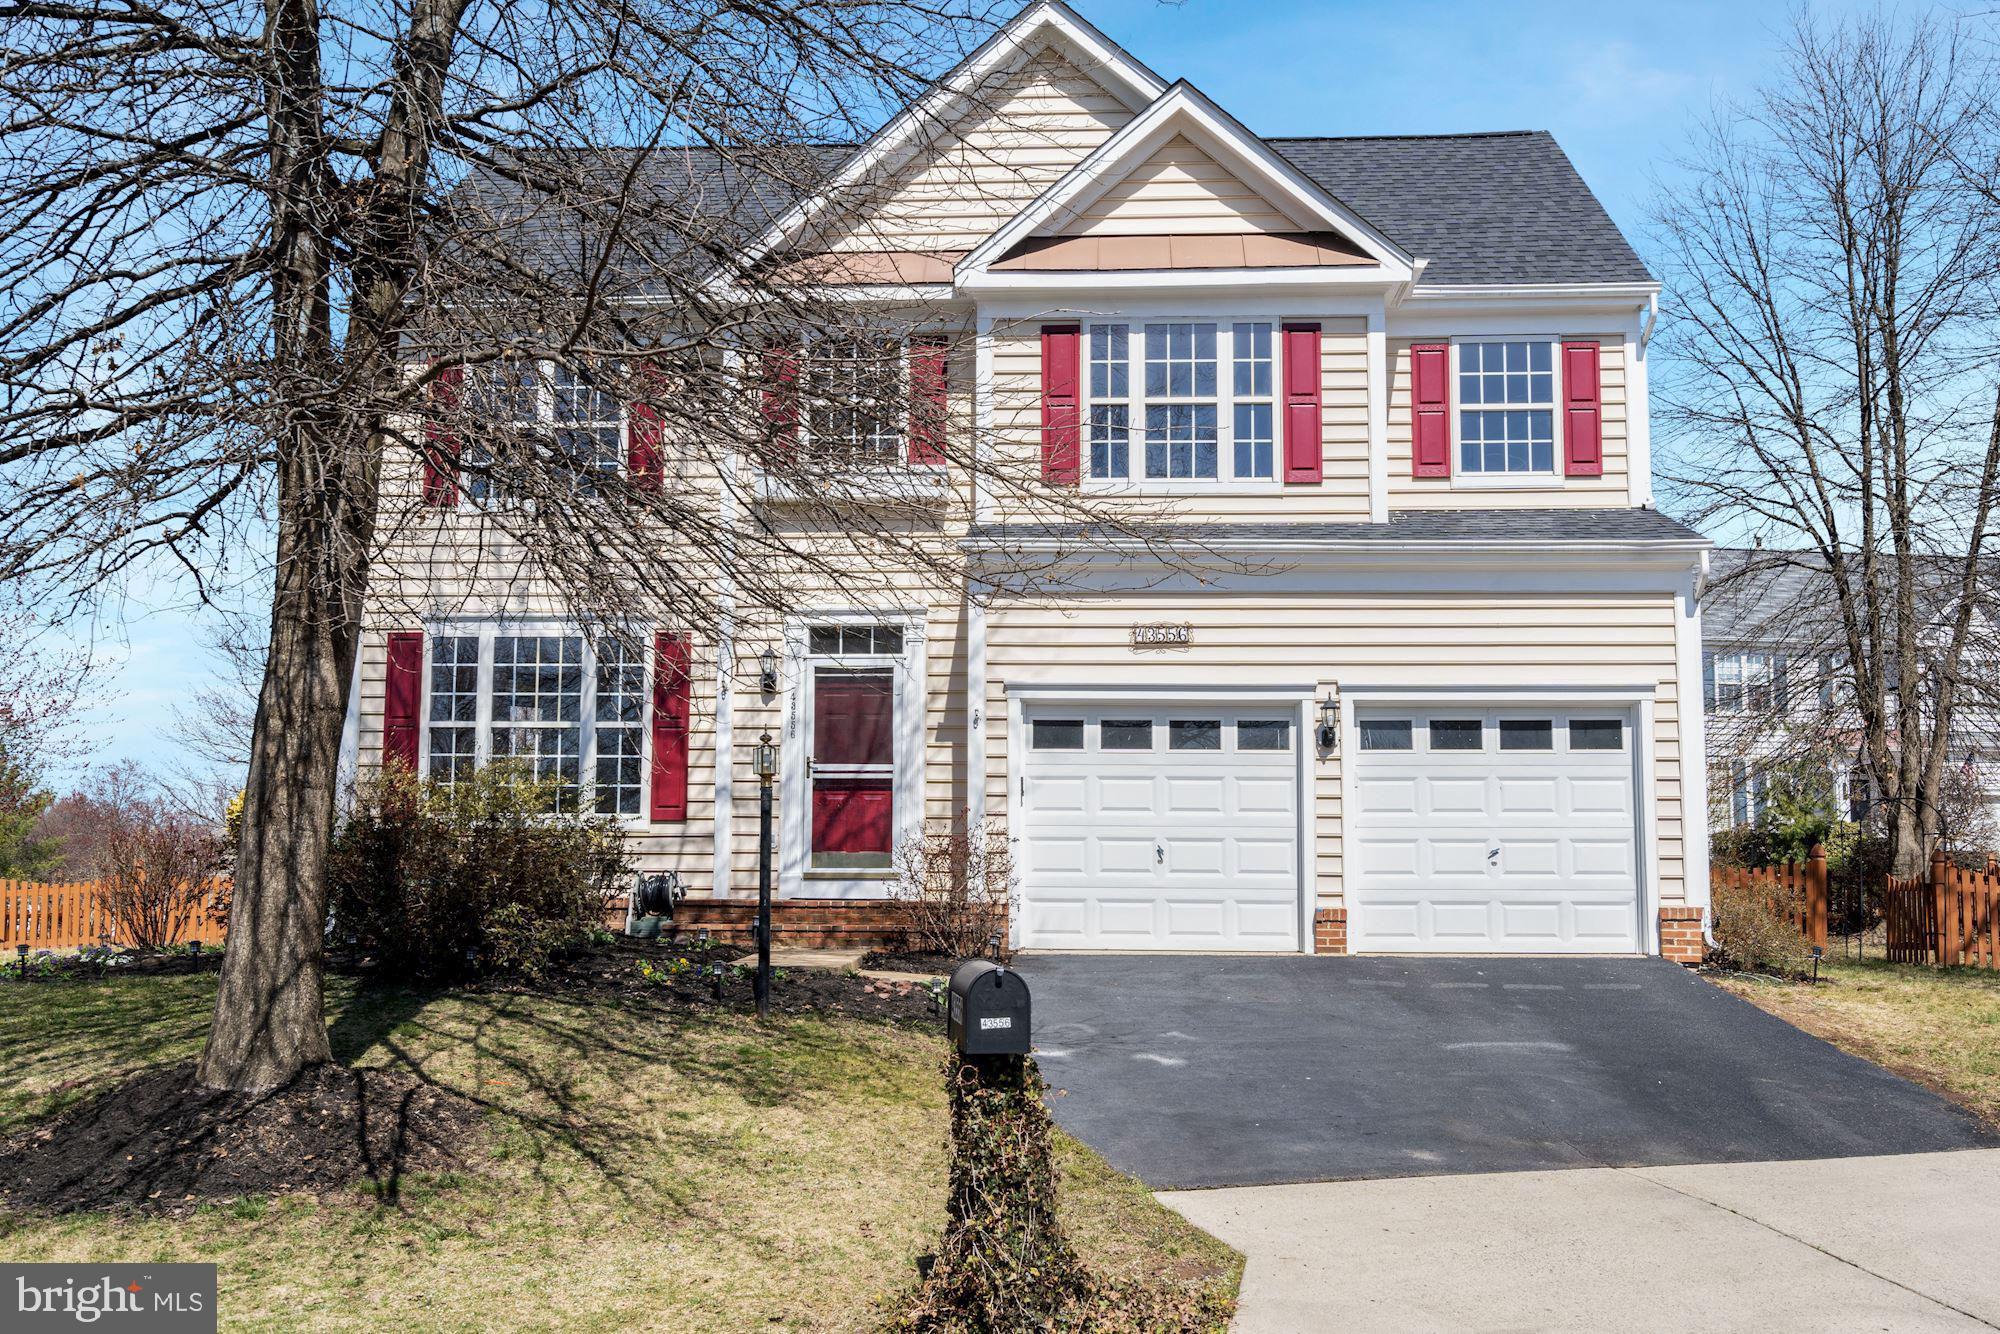 OPEN HOUSE:  Friday, March 26th 5-7pm and Saturday, March 27th Noon-3pm: This is the house you've been waiting for in Ashburn!  LOCATION is excellent- corner lot on a cul-de-sac and  NO outlet street! New Kitchen with granite counter tops & subway tile backsplash, new cabinets, stainless steel appliances* New Hardwood flooring*Updated Master Bathroom* New Lighting* Updated powder-room*Over 3000 square feet of finished  living space*Large corner lot on a cul de sac in Ashburn within the Ashriar Community*Fenced Back yard*Privacy surrounds this house* Relax on the Large Deck or Screened-in Porch off of the sunroom*Beautifully landscaped*NEWER roof*NEWER Carrier HVAC**NEWER Hot Water Heater (2018)*Fully finished lower level with a potential 4th bedroom or office*Full bath on lower level*Sky lights and vaulted ceiling in the Breakfast/Family room area. Ashbriar is a community nested in Ashburn that is  sought after with this amazing location in this quant neighborhood*Tot lo located diagonally from property and Minnieland Academy around the corner, property is near all the amenities -walking trails surround this neighborhood  ! Minutes away from SILVER line metro*Walk to Broad Run High School*Make this house your home !